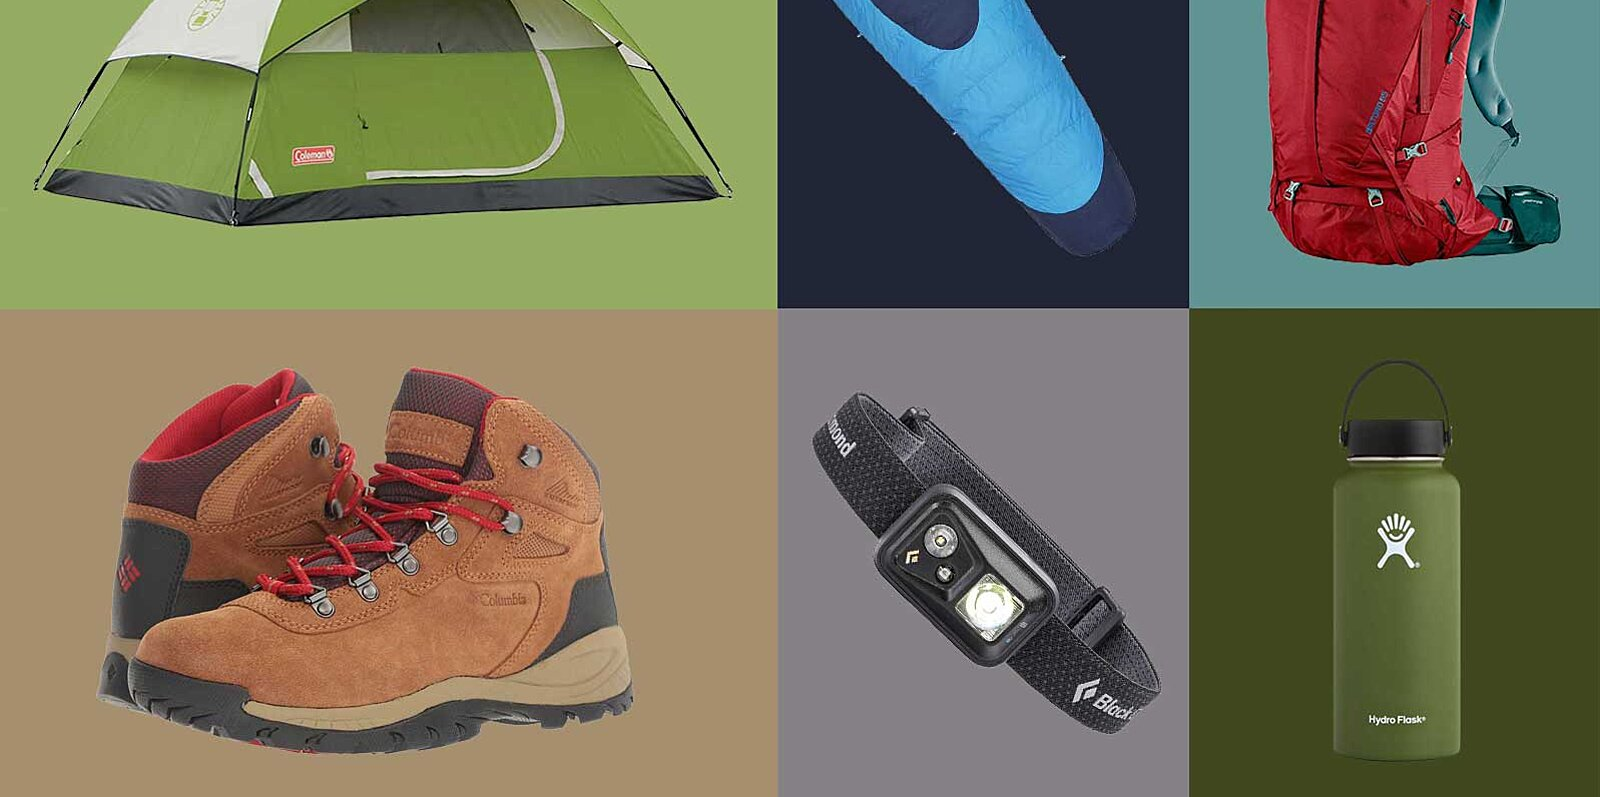 The Best Camping and Hiking Gear You Can Find on Amazon